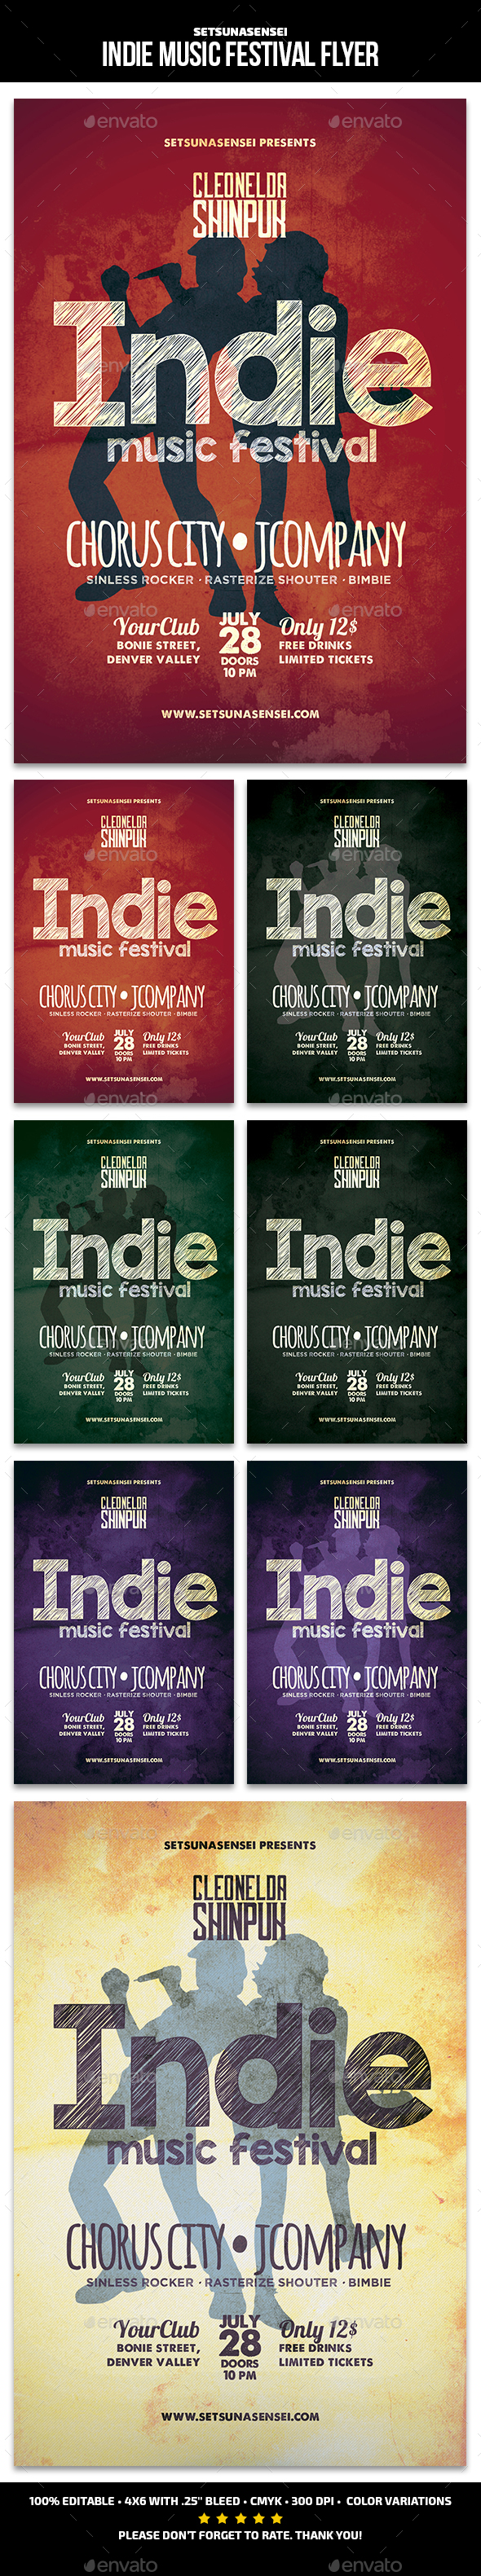 Indie Music Festival Flyer - Events Flyers